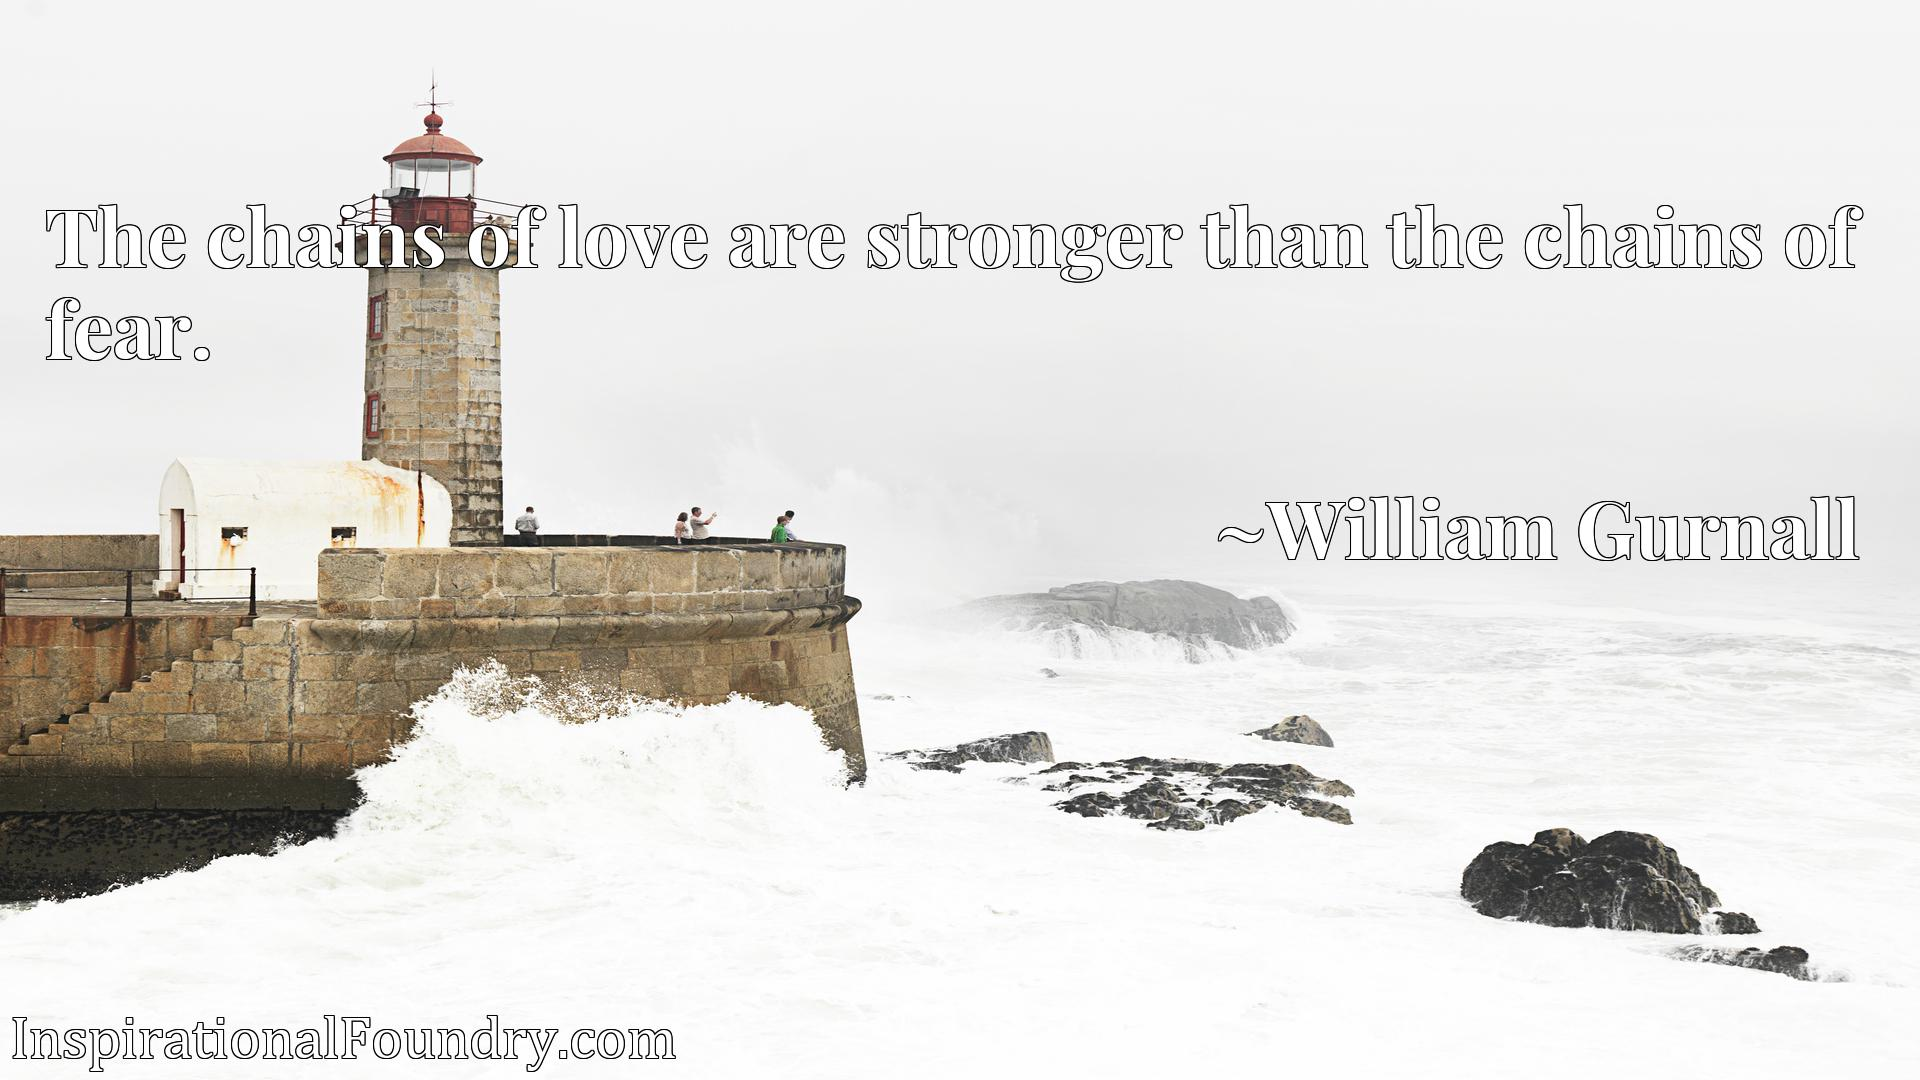 The chains of love are stronger than the chains of fear.